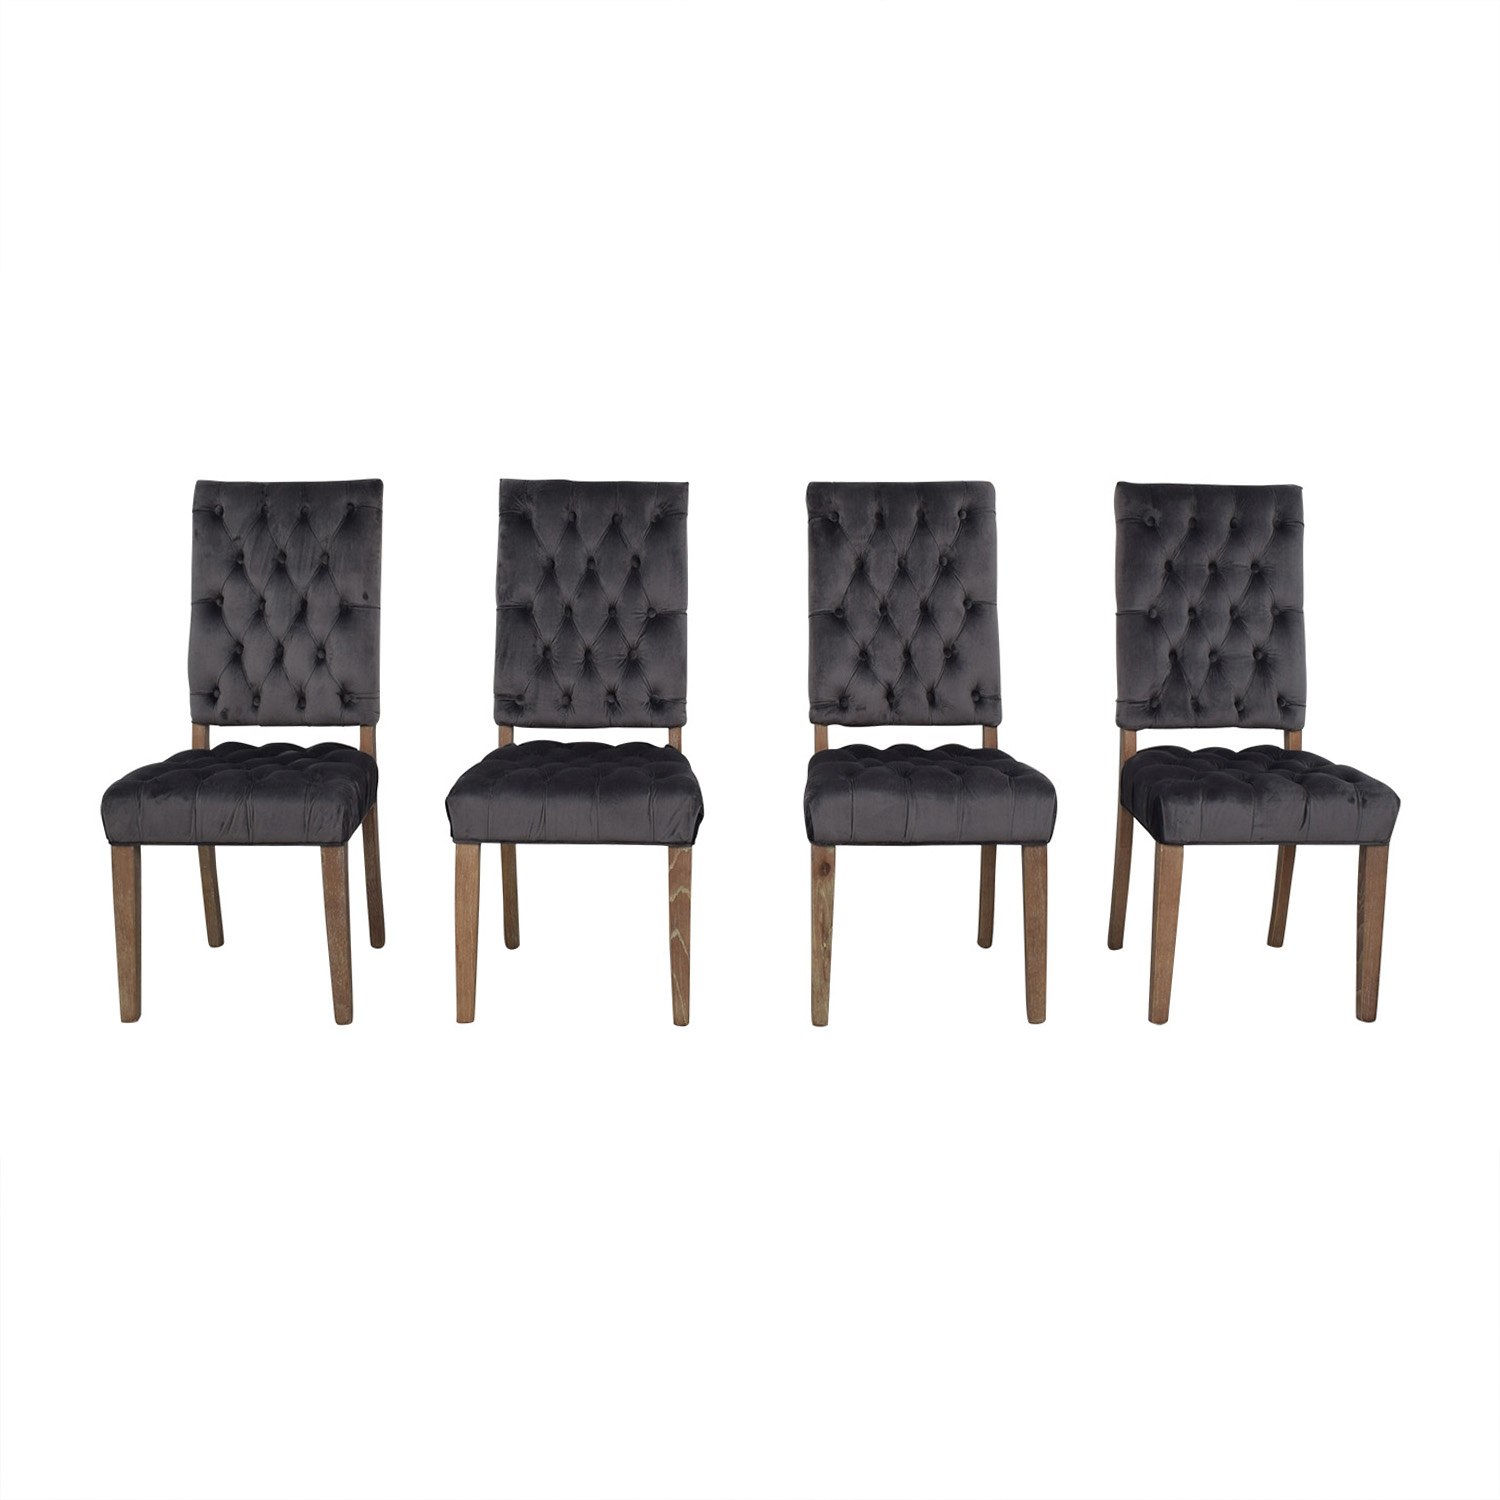 shop Classic Concepts Onyx Tufted Dining Chairs Classic Concepts Dining Chairs